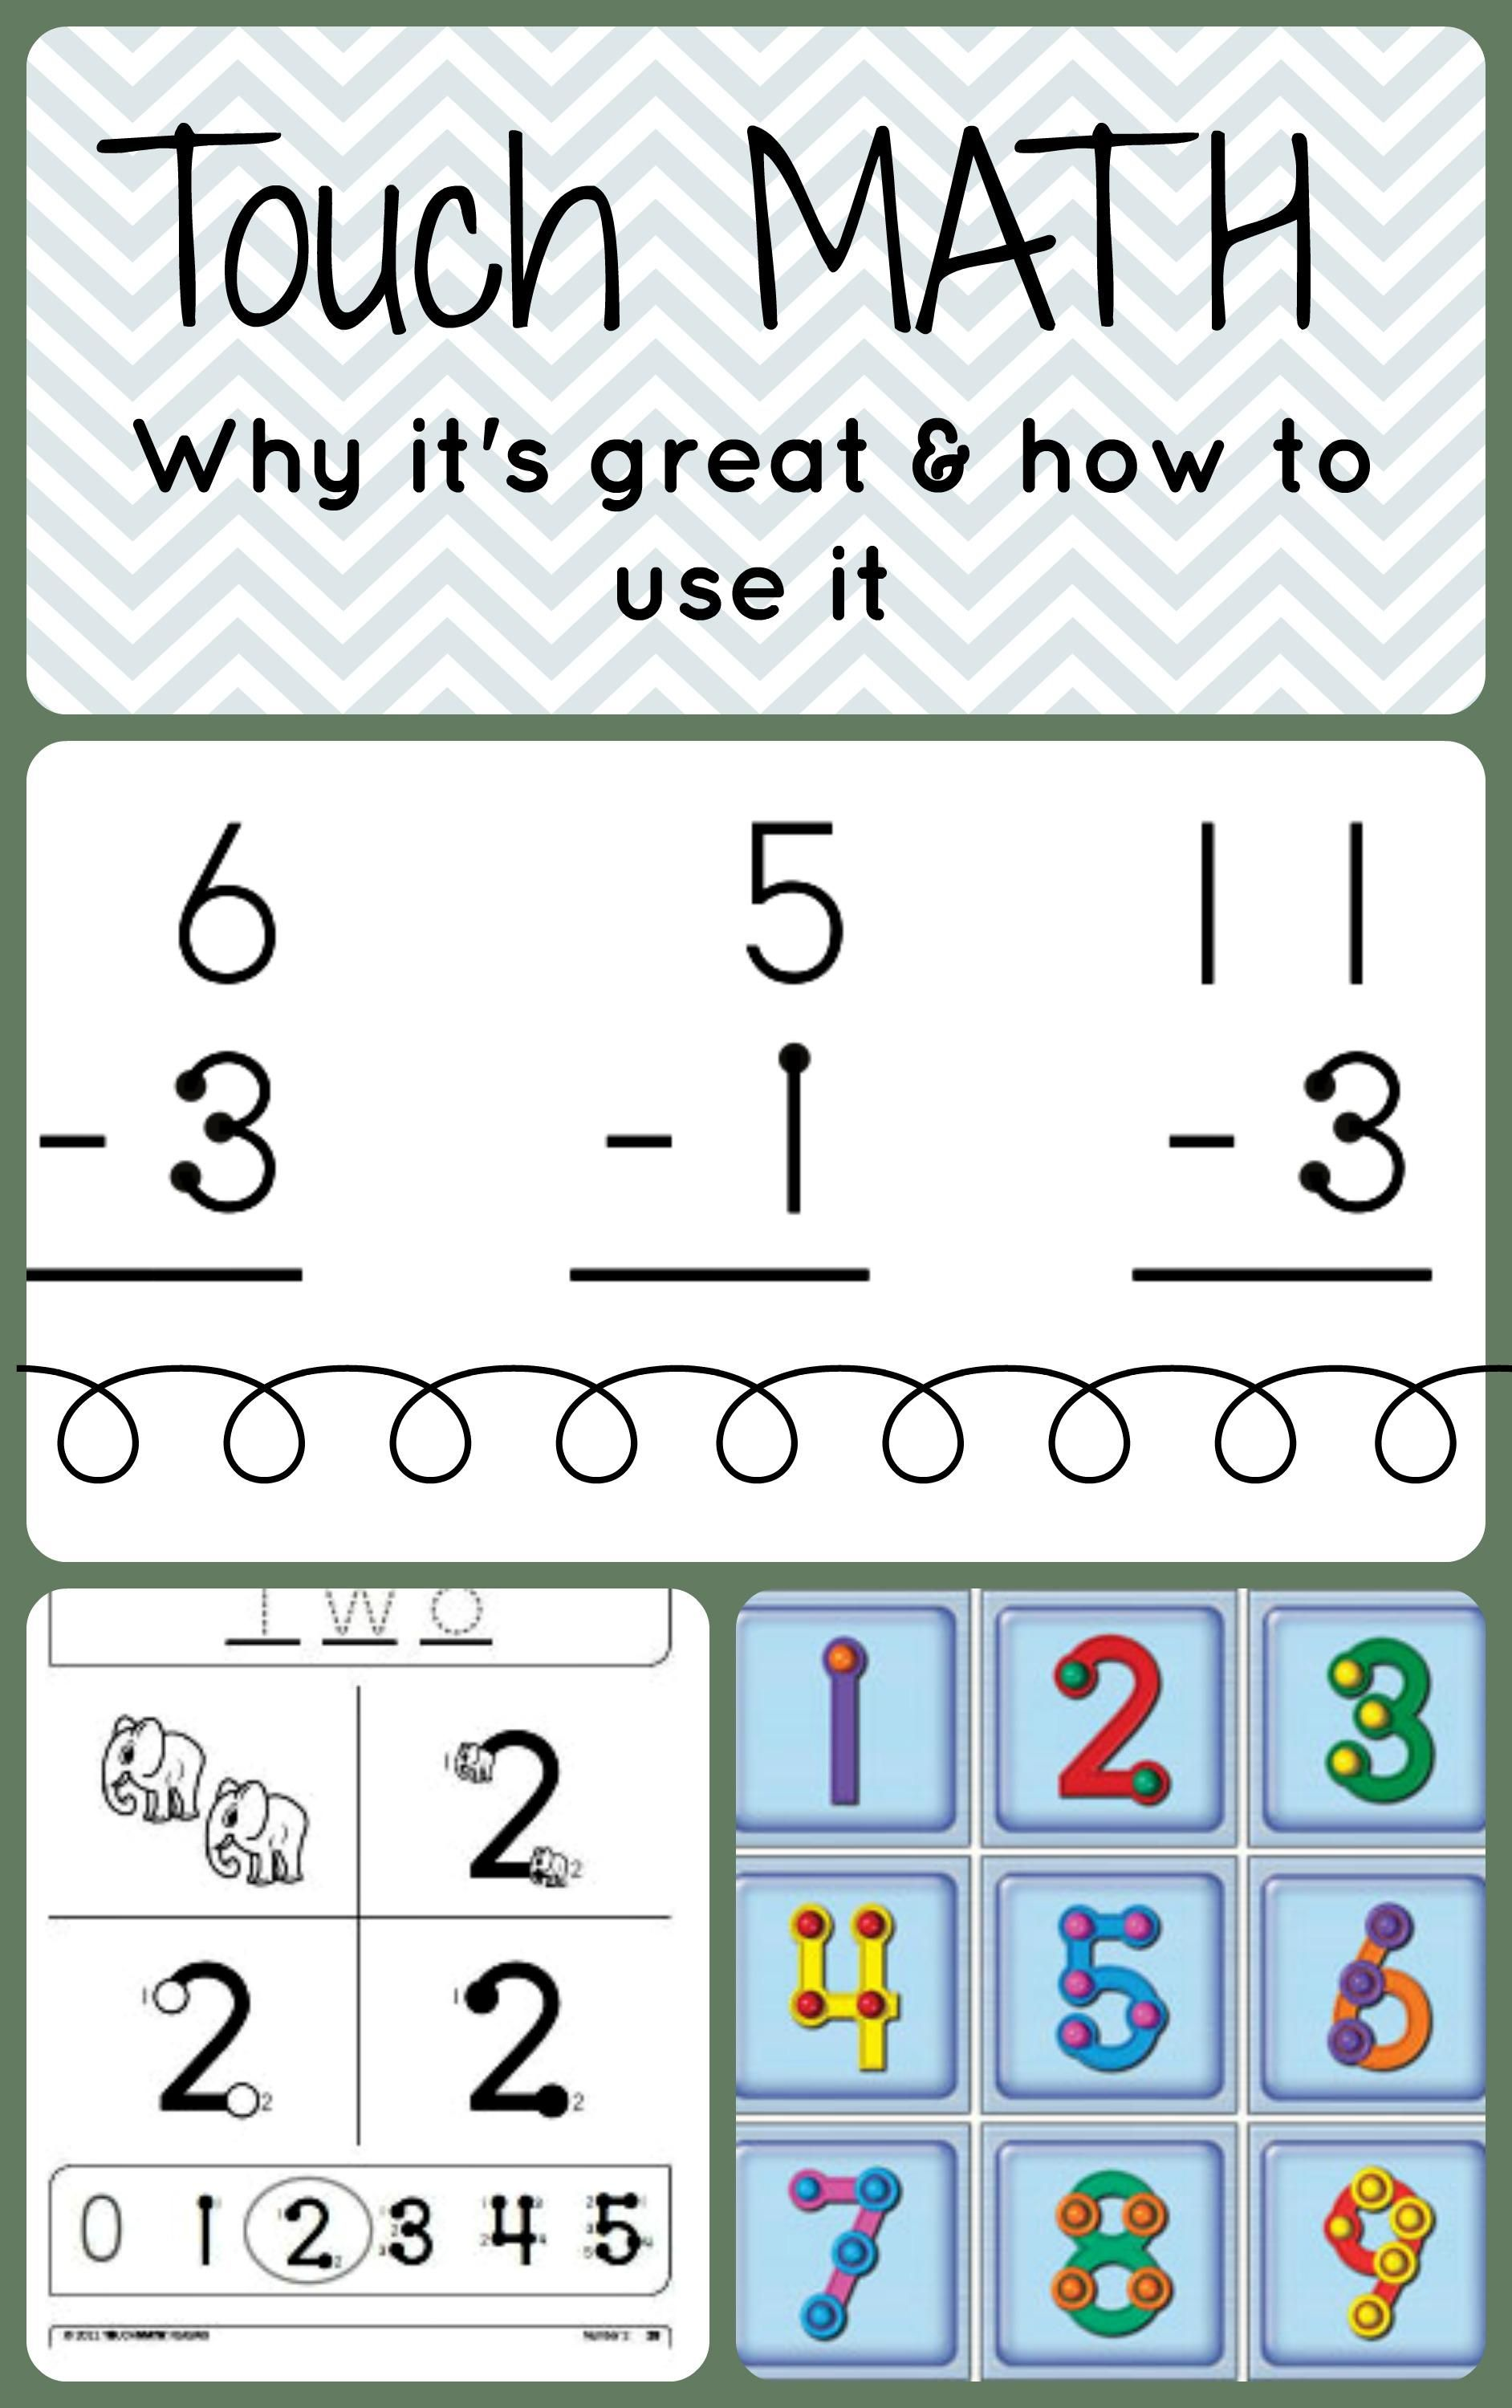 Worksheets Touch Math Worksheets touchmath why its great how you should use it touch math are familiar with this visually based approach can be perfect for our